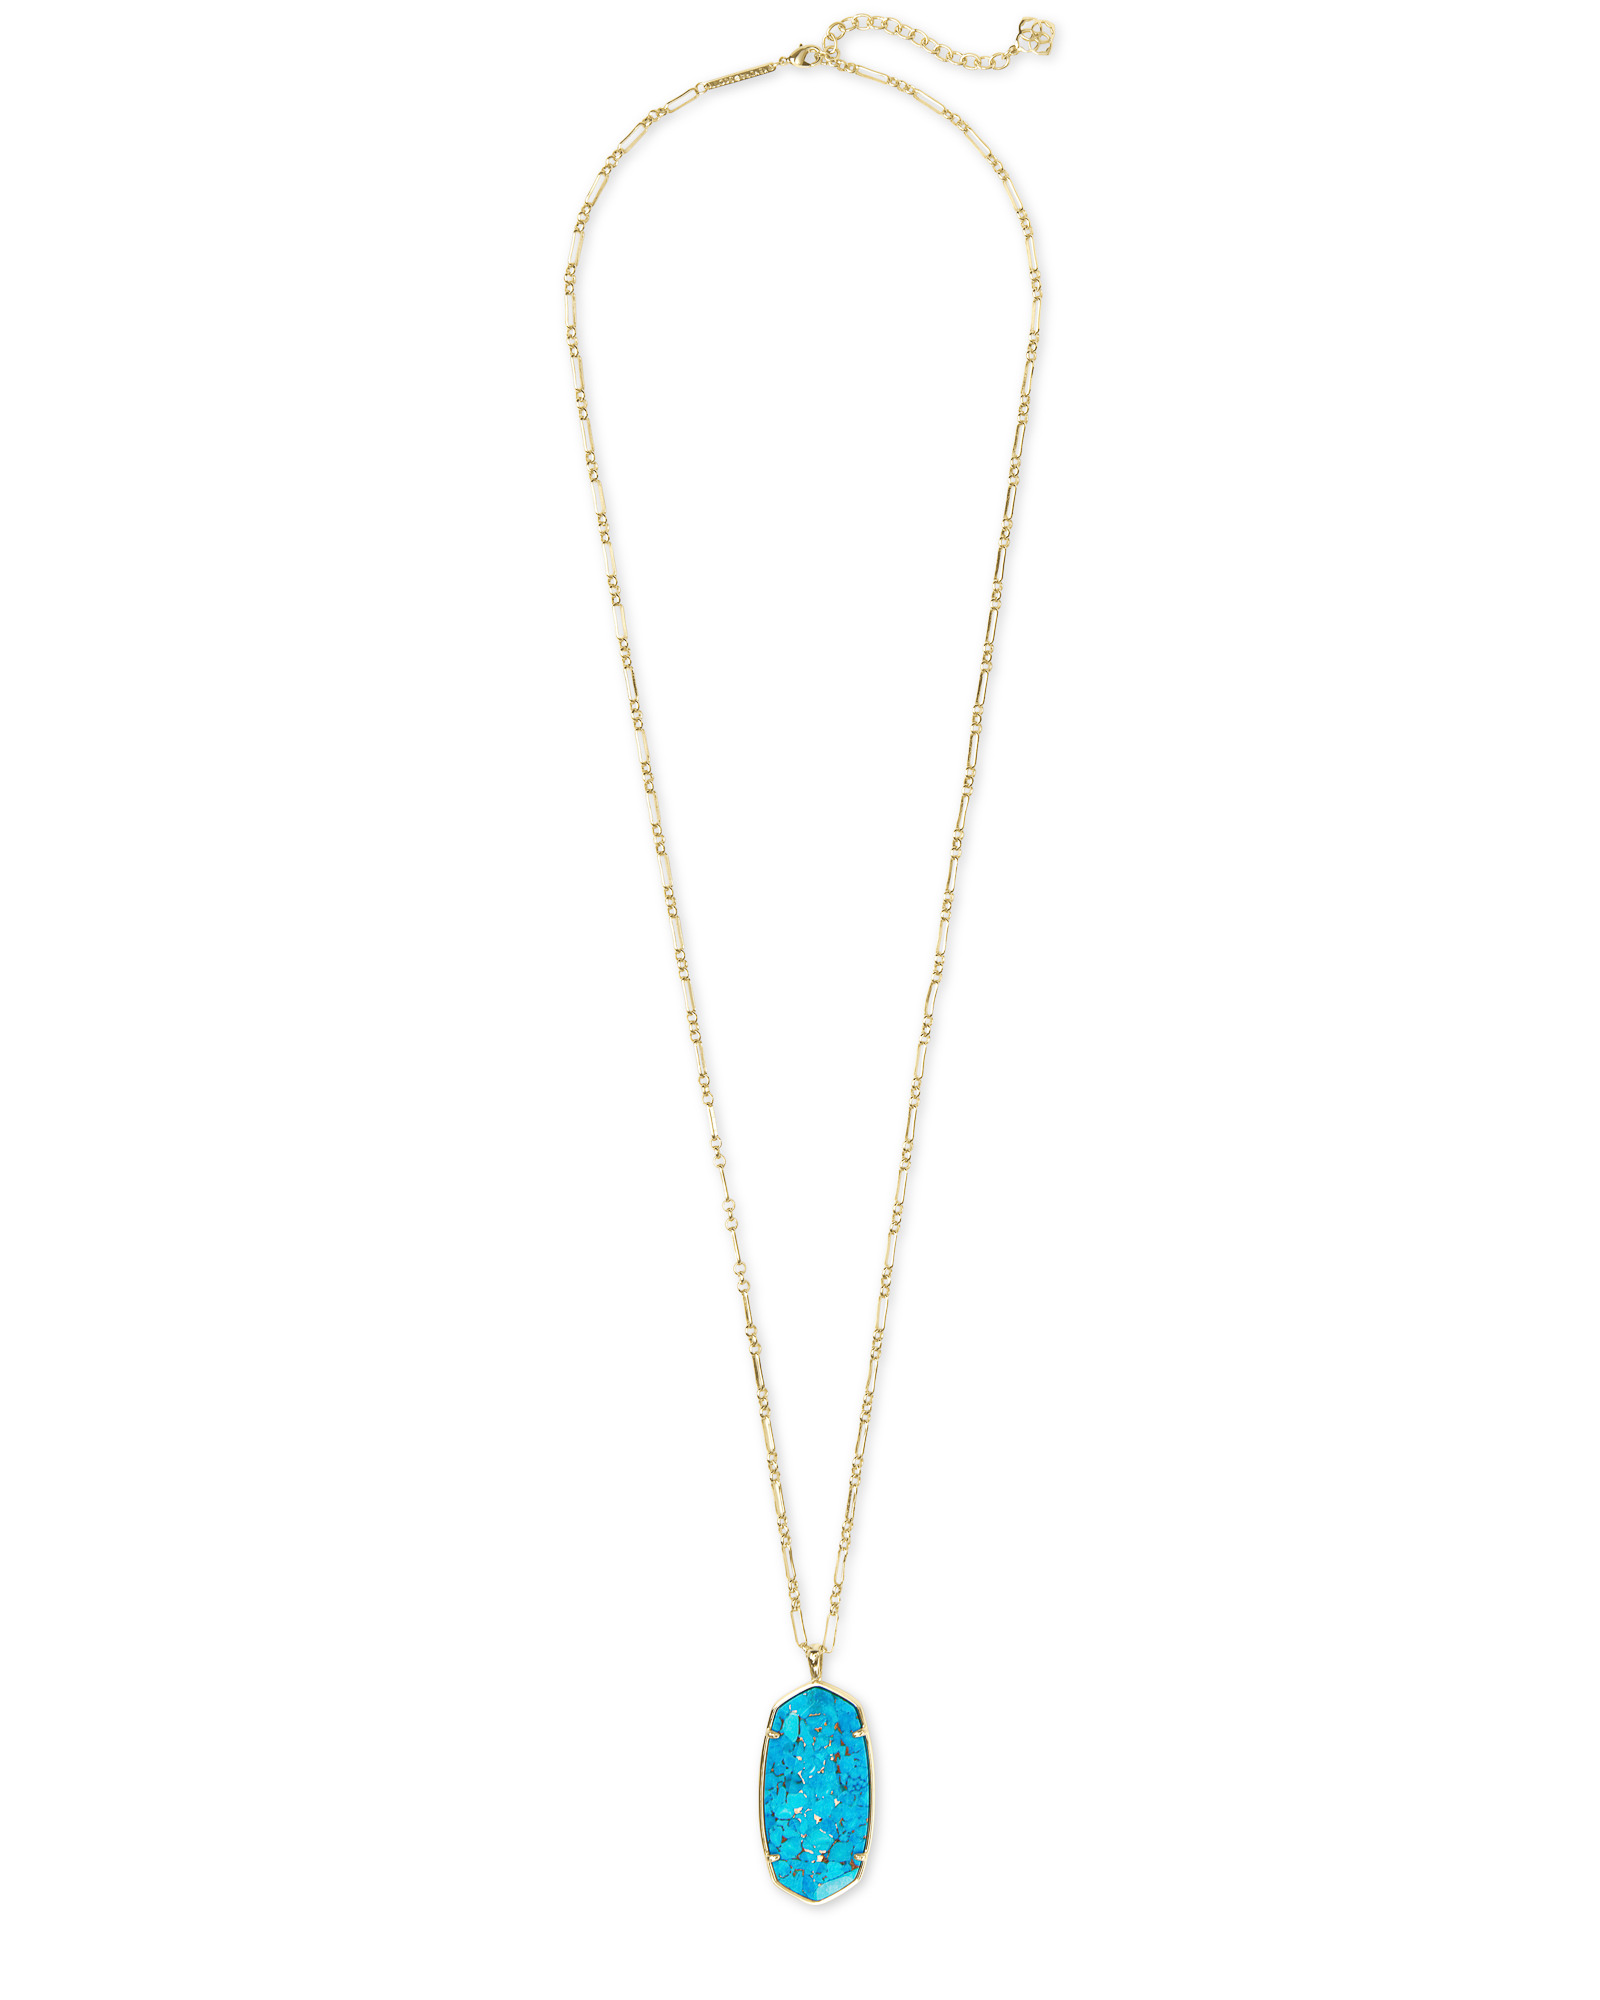 Faceted Reid Gold Long Pendant Necklace in Bronze Veined Turquoise Magnesite